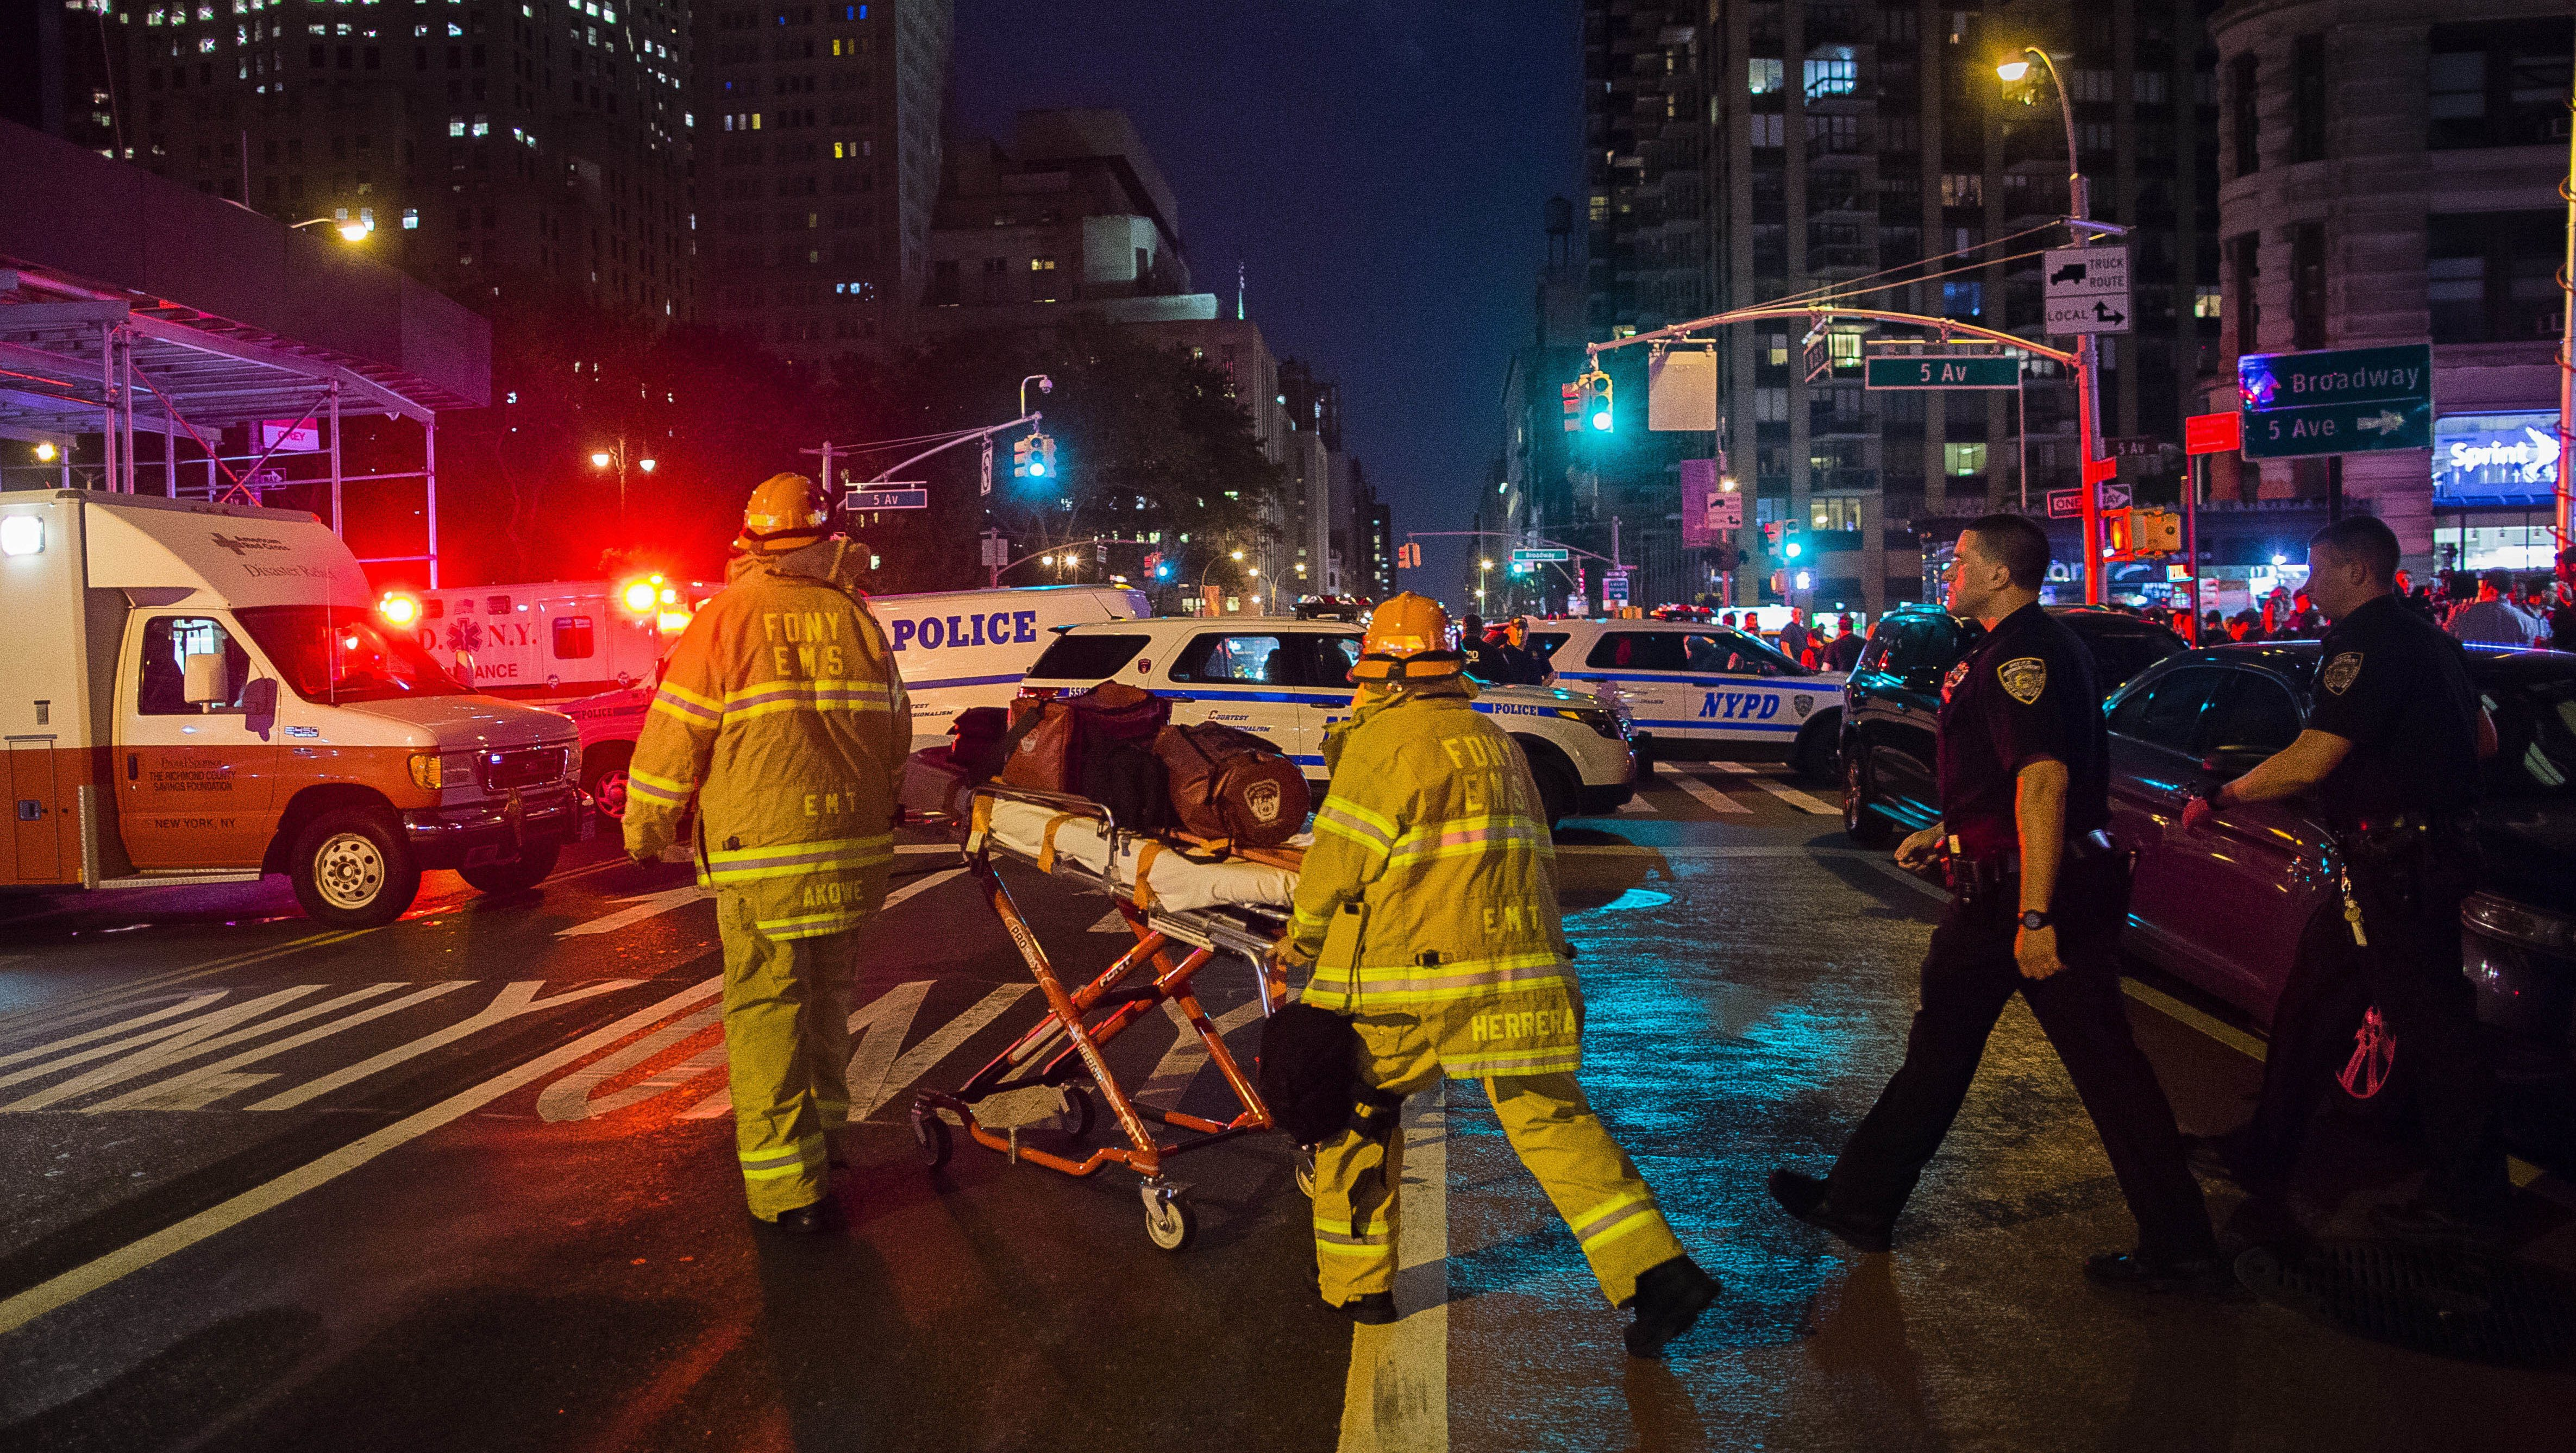 In this Sept. 17, 2016 file photo, first responders work near the scene of an explosion in Manhattan's Chelsea neighborhood, in New York. Although the pressure cooker bomb that wounded over two dozen people on the street went off in front of an apartment building for the blind, none of the building's residents were hurt in the blast. (AP Photo/Andres Kudacki, File)